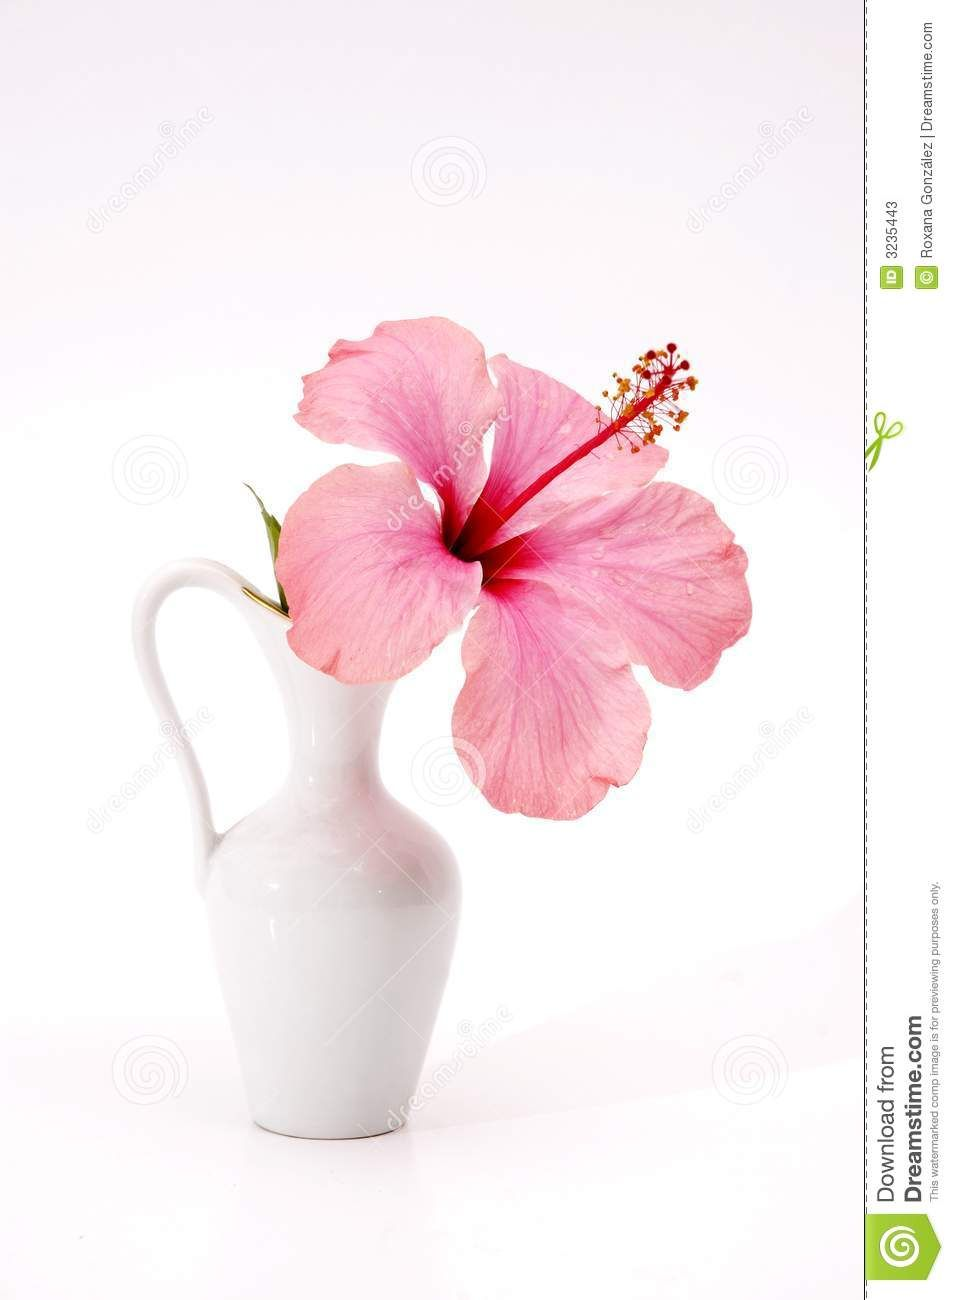 Vase flowers flowers pinterest image macro leaf images and vase flowers izmirmasajfo Gallery